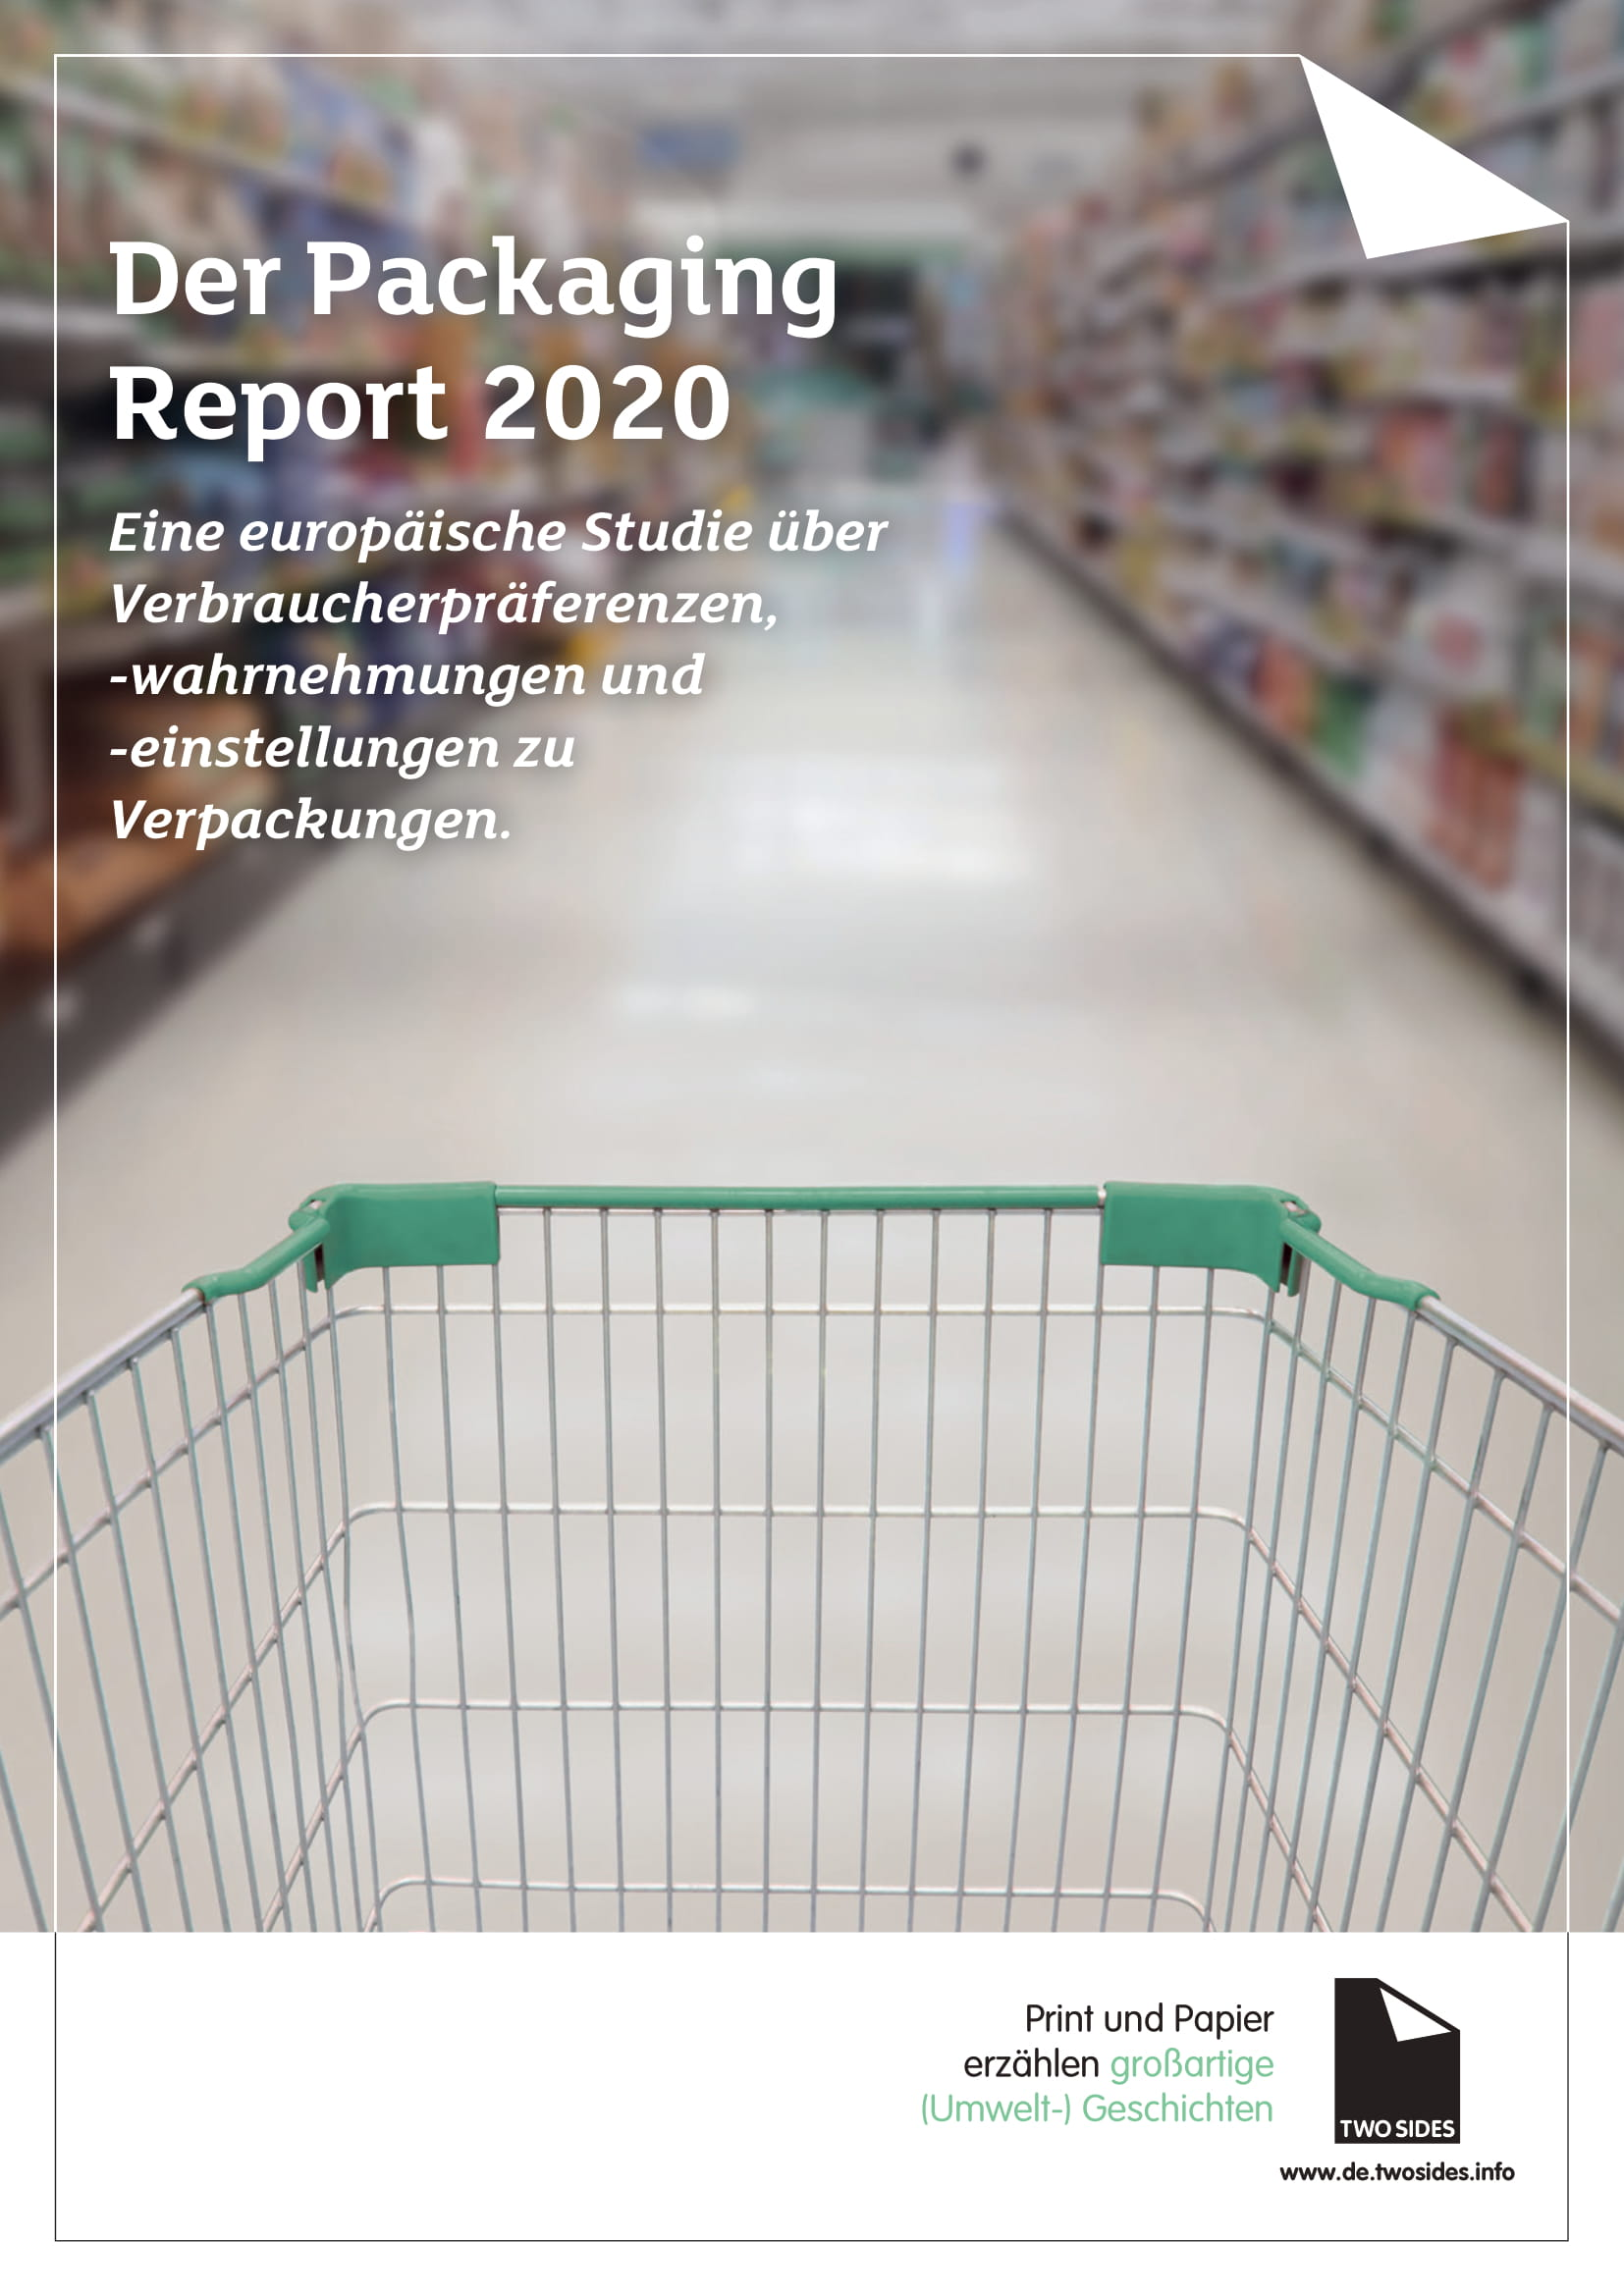 Der Packaging Report 2020